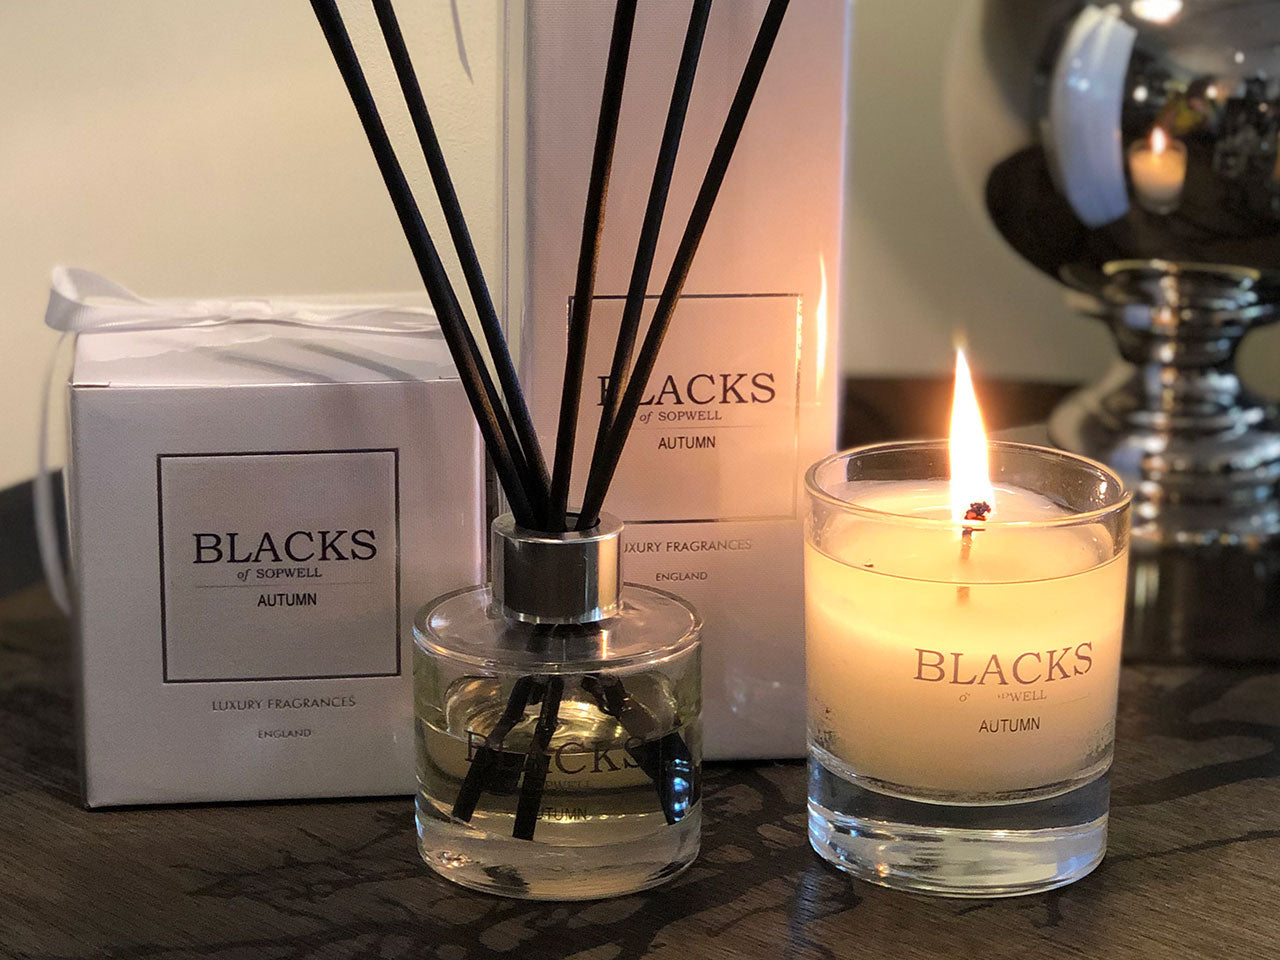 Blacks Home fragrance candle and diffuser